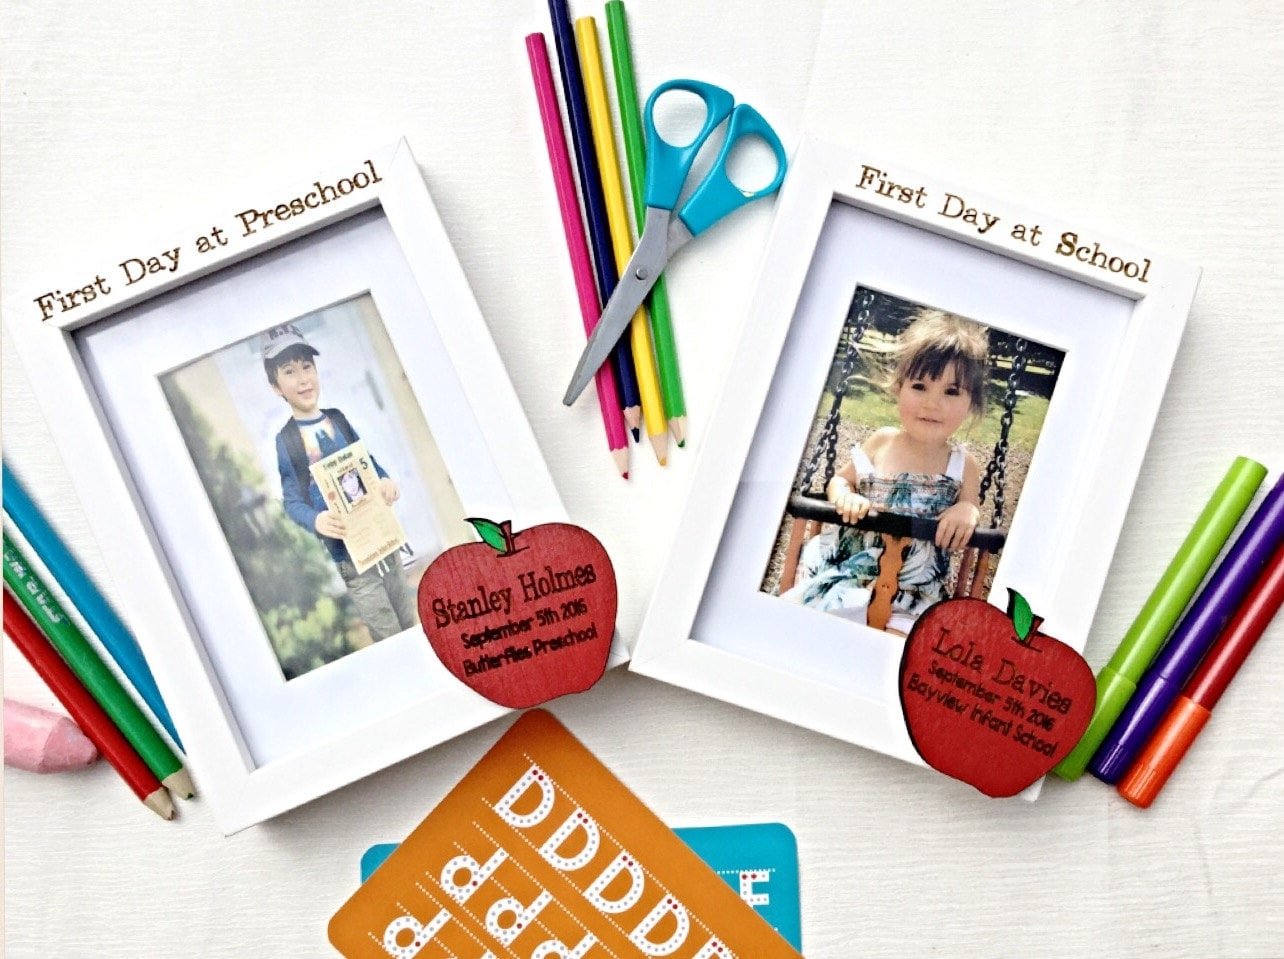 First day of school frame, 1st day at school, Personalised frame ...